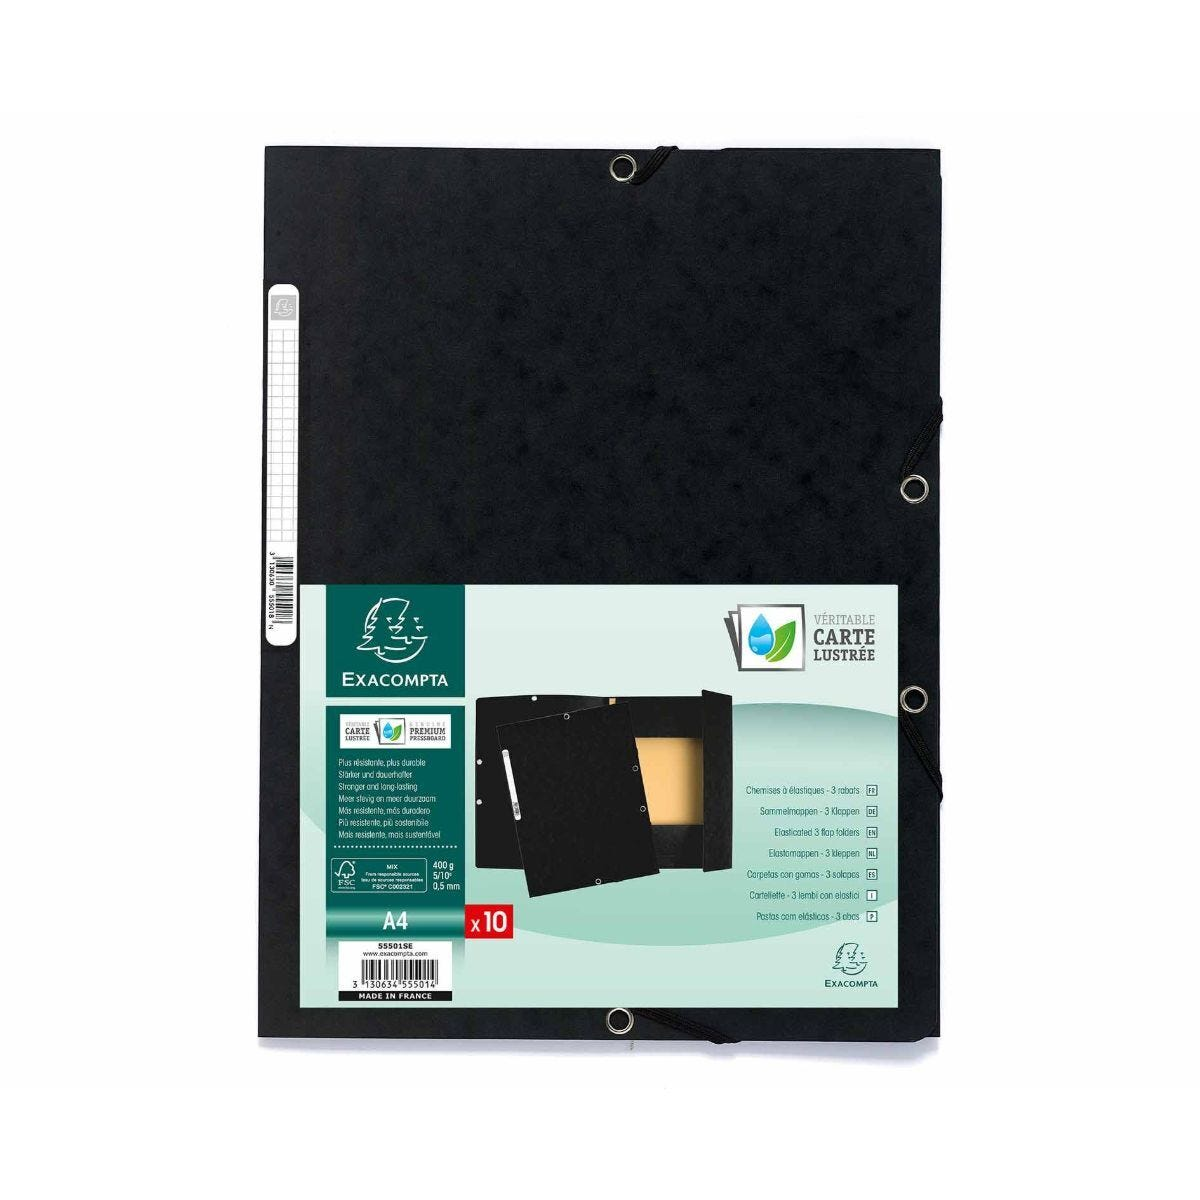 Exacompta Europa 3 Flap Elastic Folder A4 Pack of 50 400gsm Black